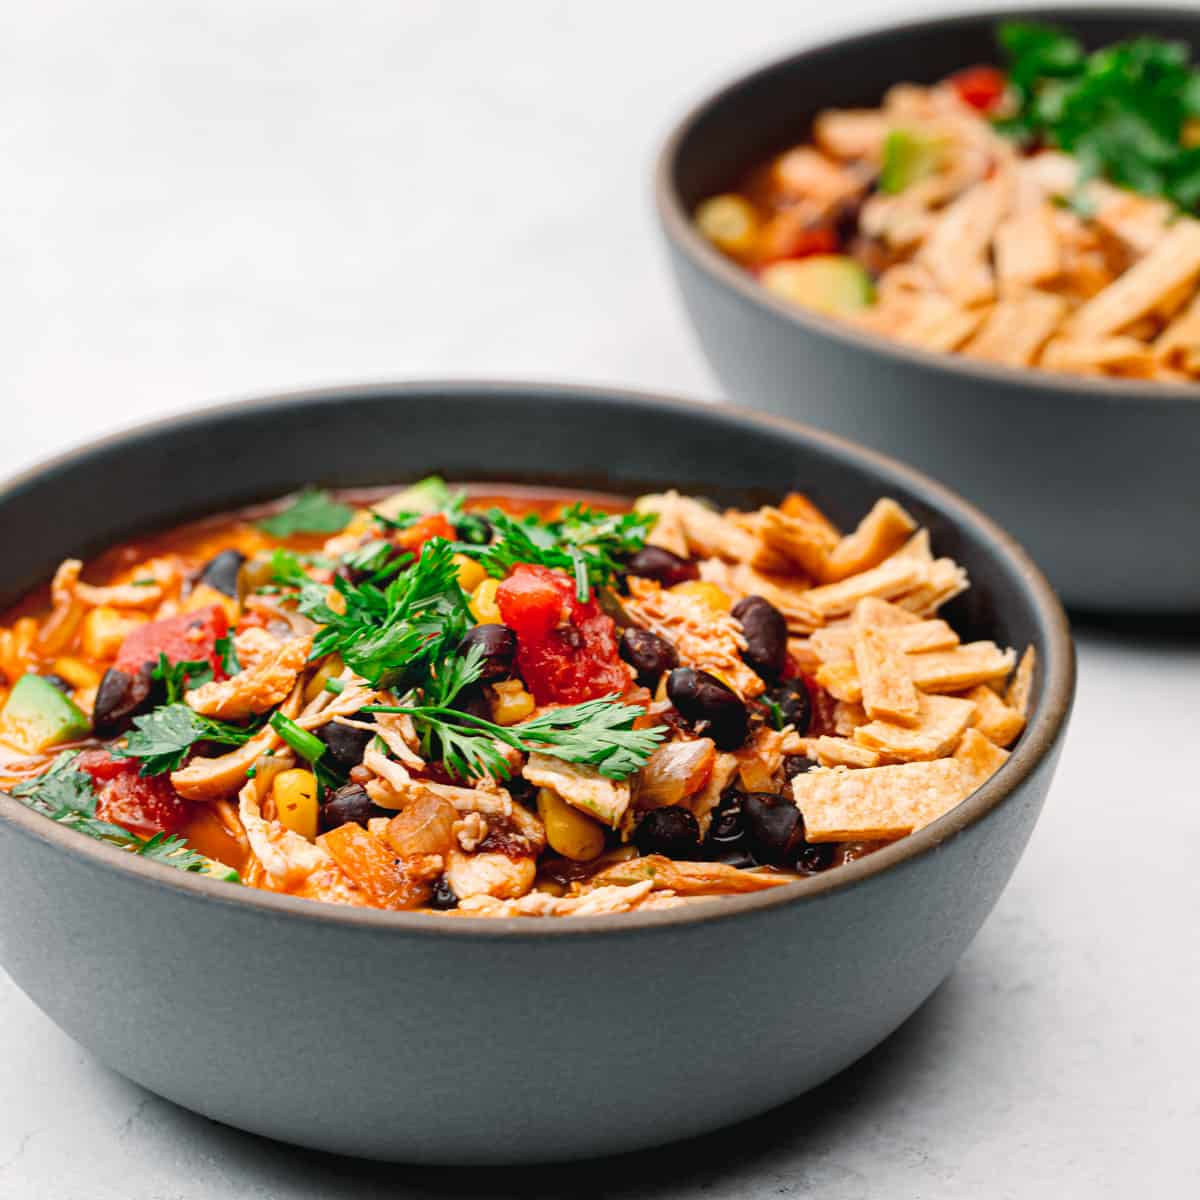 A recipe for tortilla soup with chicken.